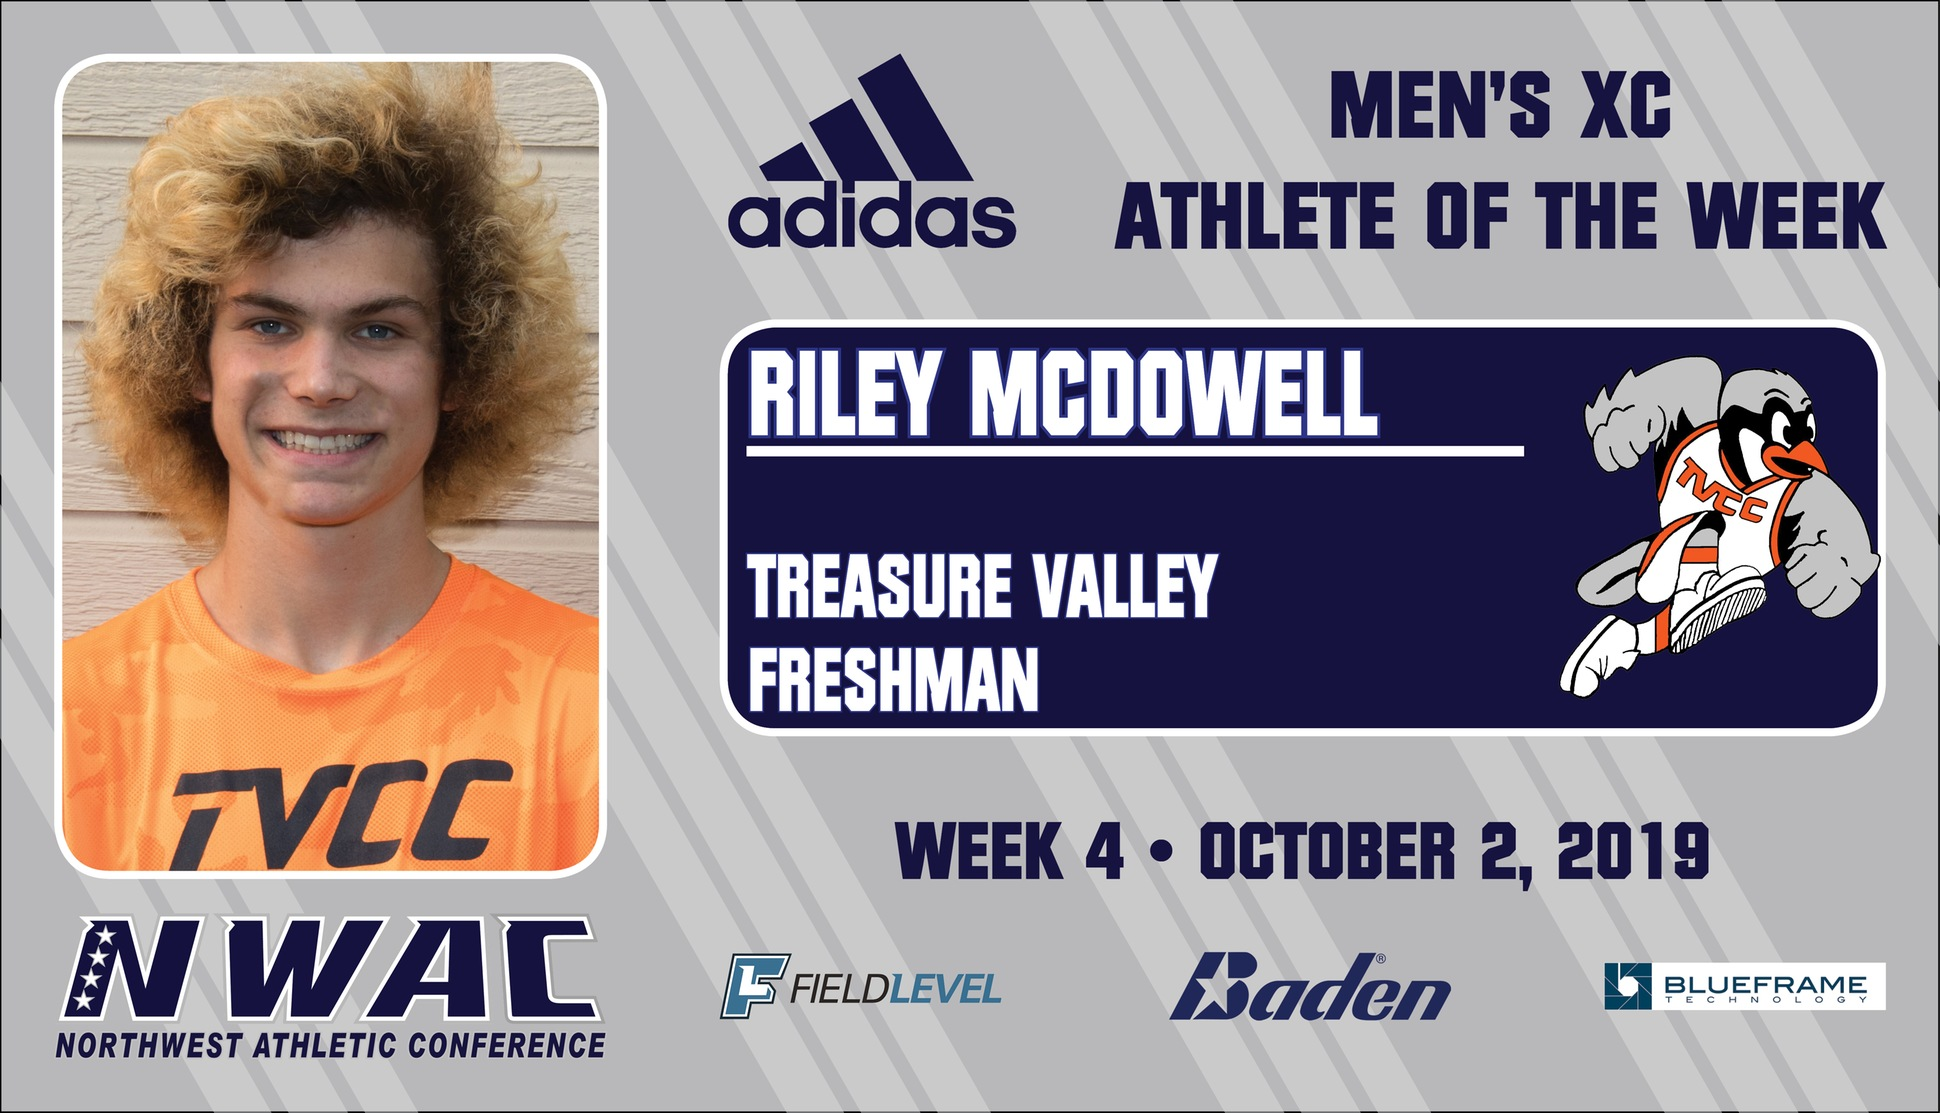 Graphic of Riley McDowell